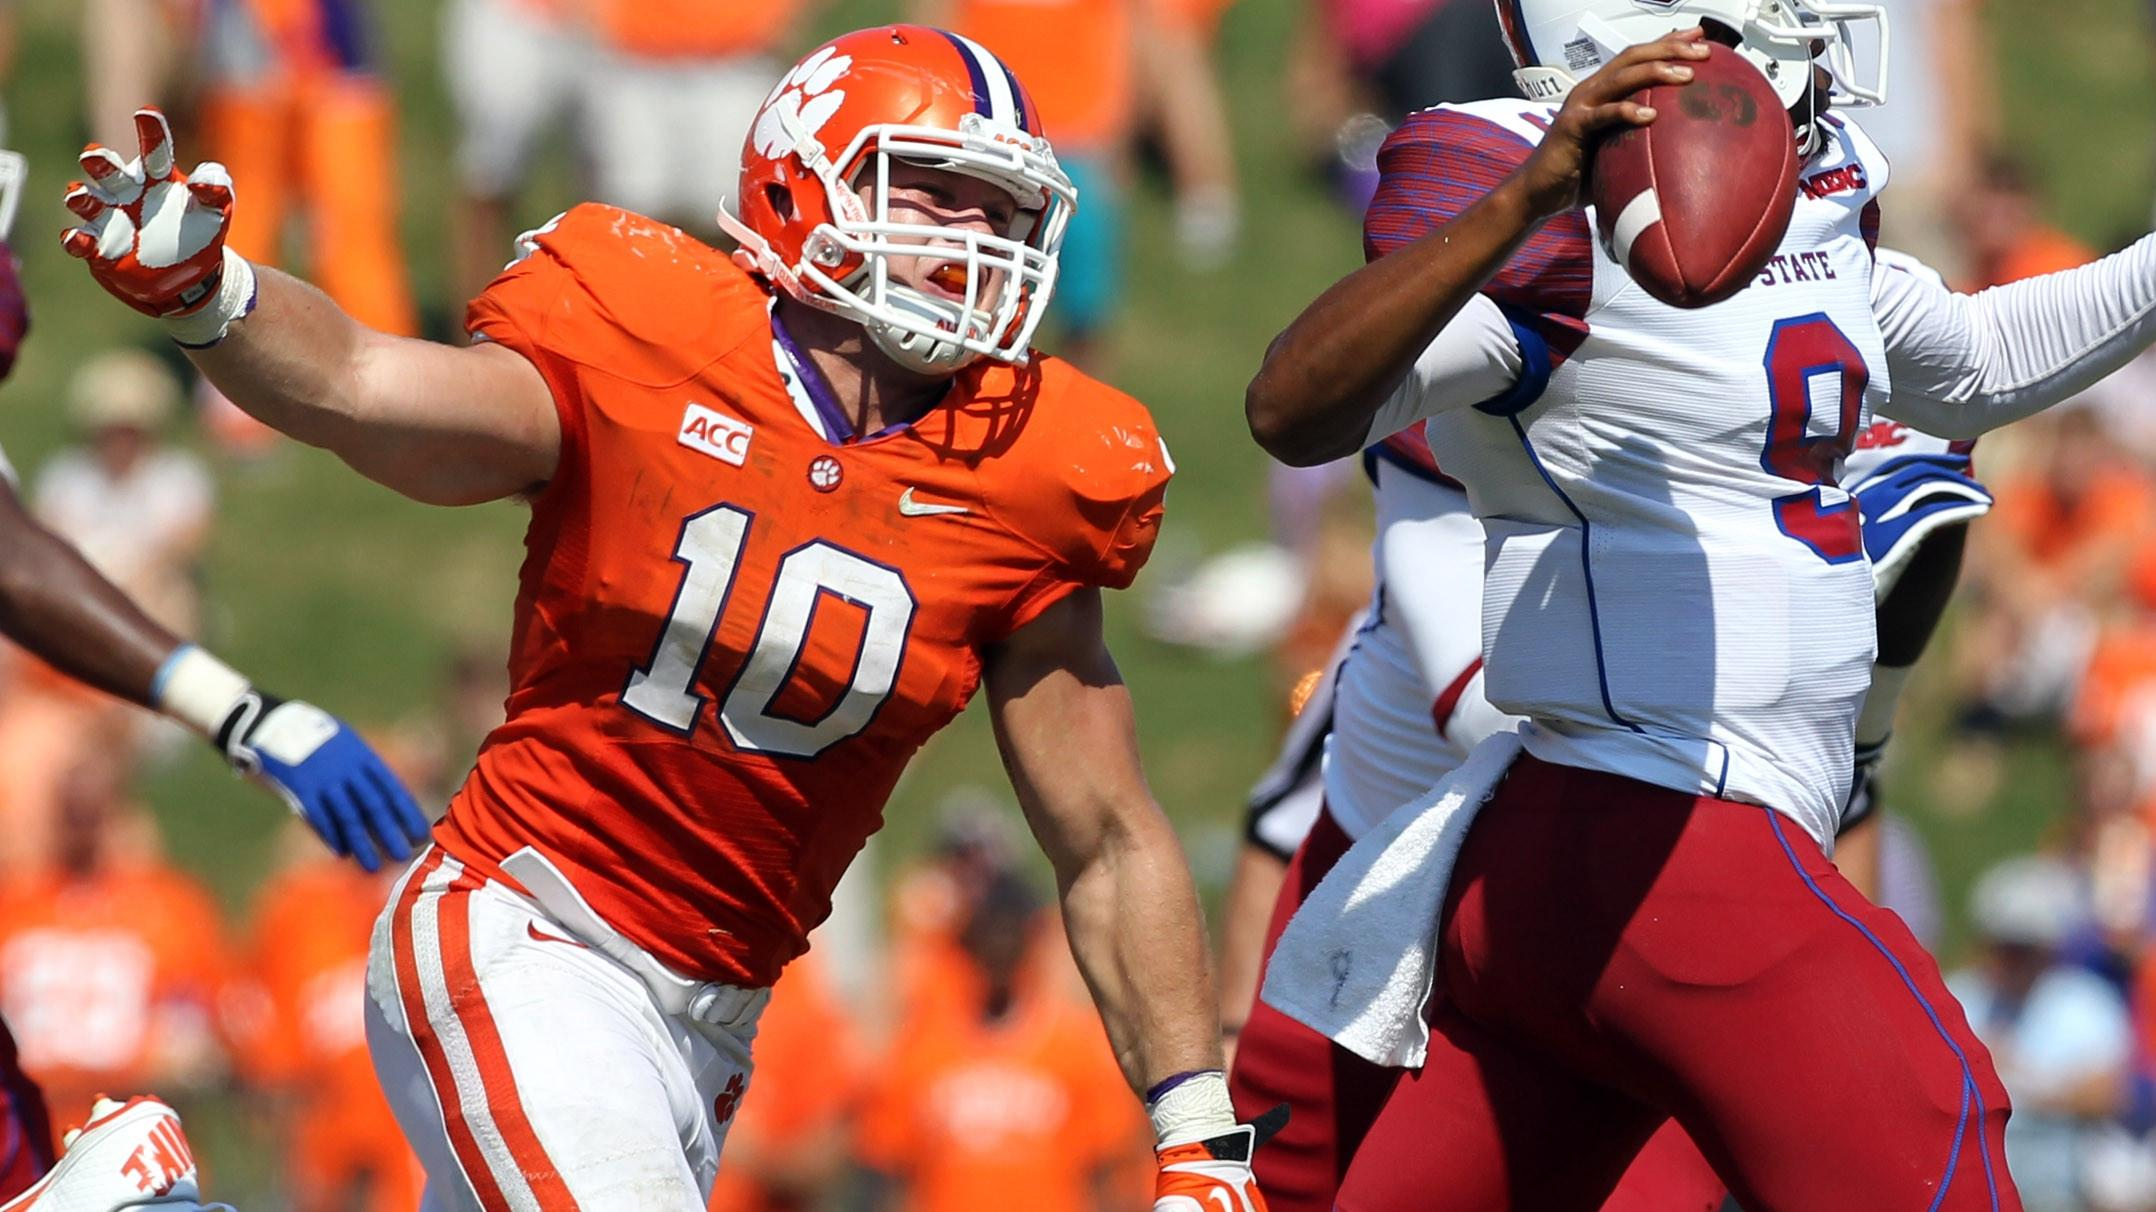 Clemson Football Video Report: 100 Yards with Ben Boulware